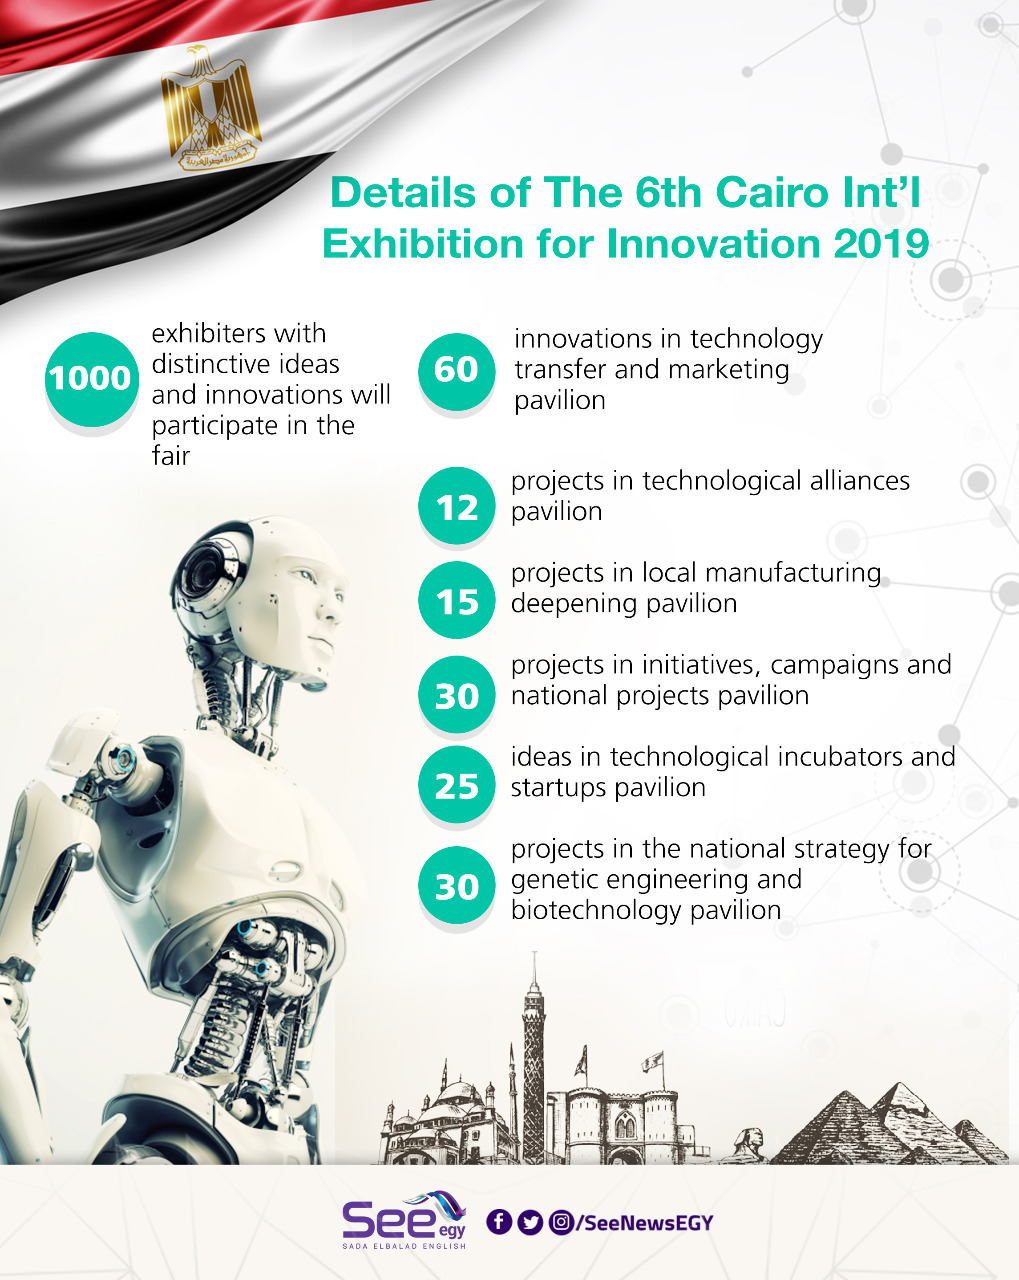 Details of The 6th Cairo Int'l Exhibition for Innovation 2019 [Infographic]